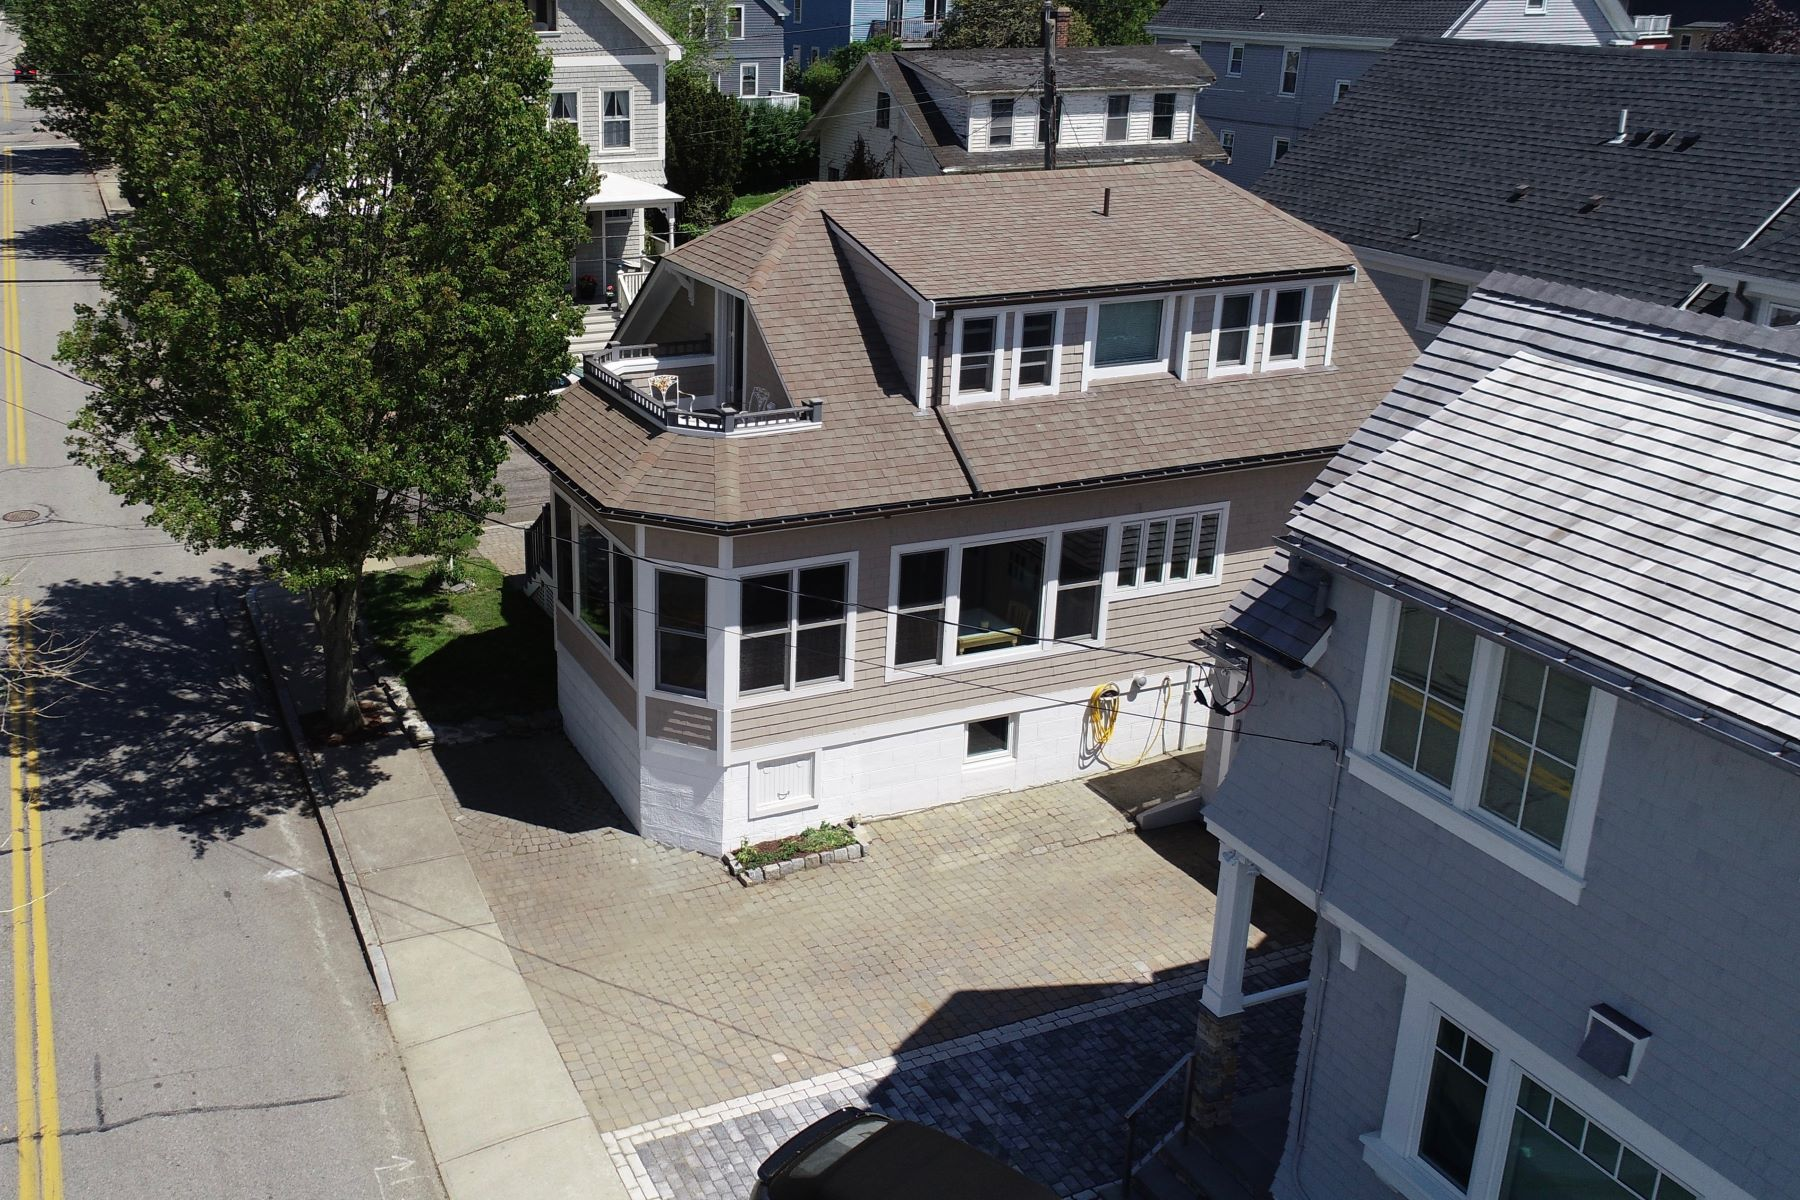 Single Family Homes for Sale at The Point 5 Van Zandt Avenue Newport, Rhode Island 02840 United States